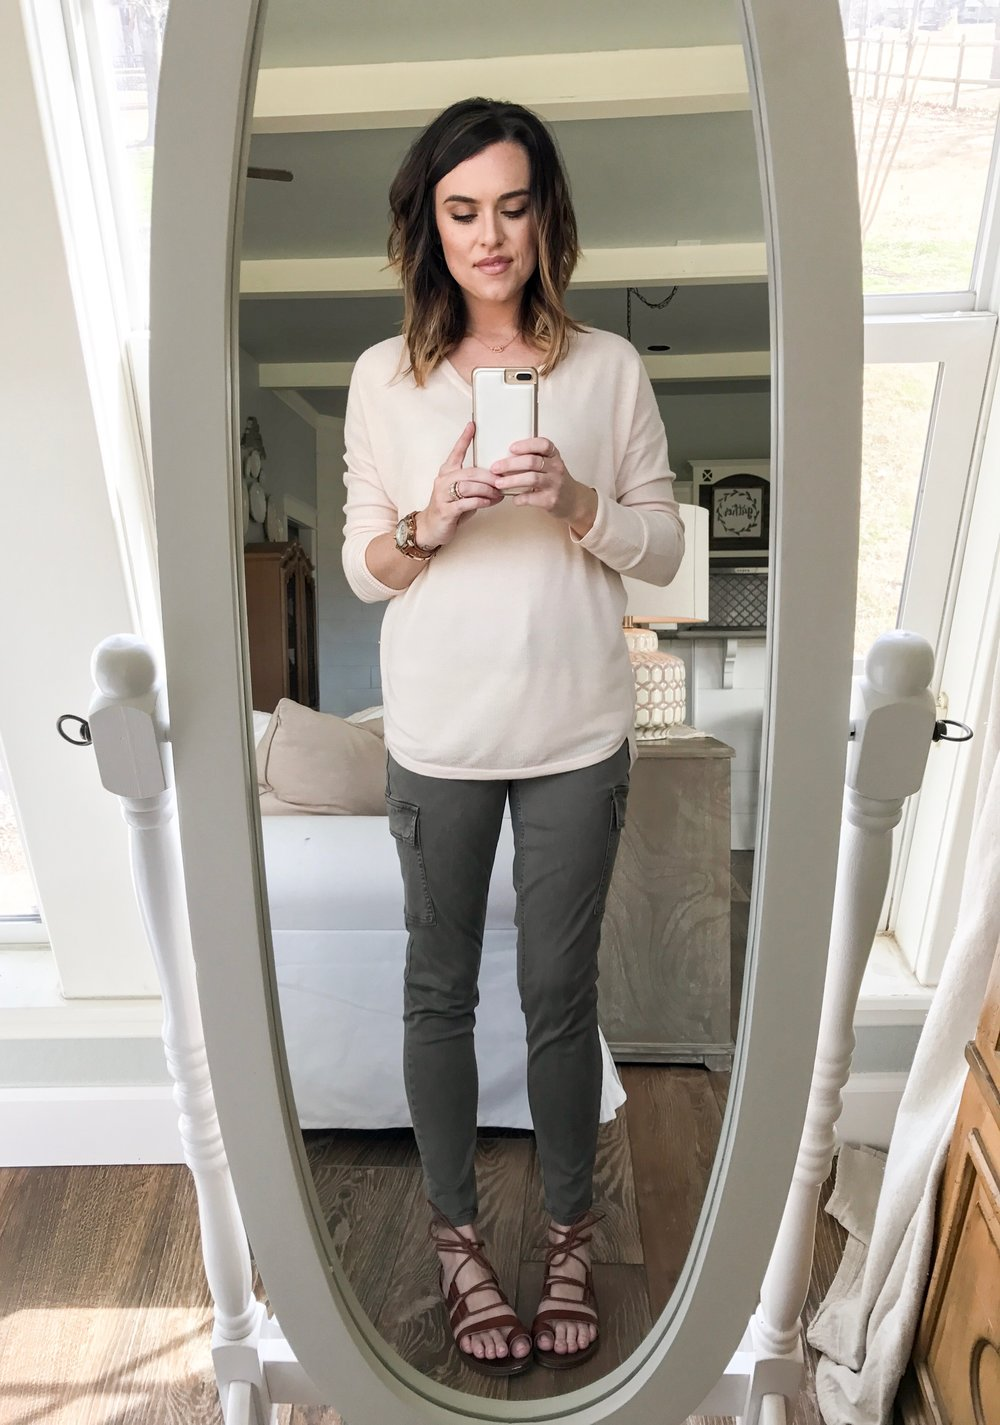 Cotton Stem Blog capsule wardrobe series army green pants pink sweater